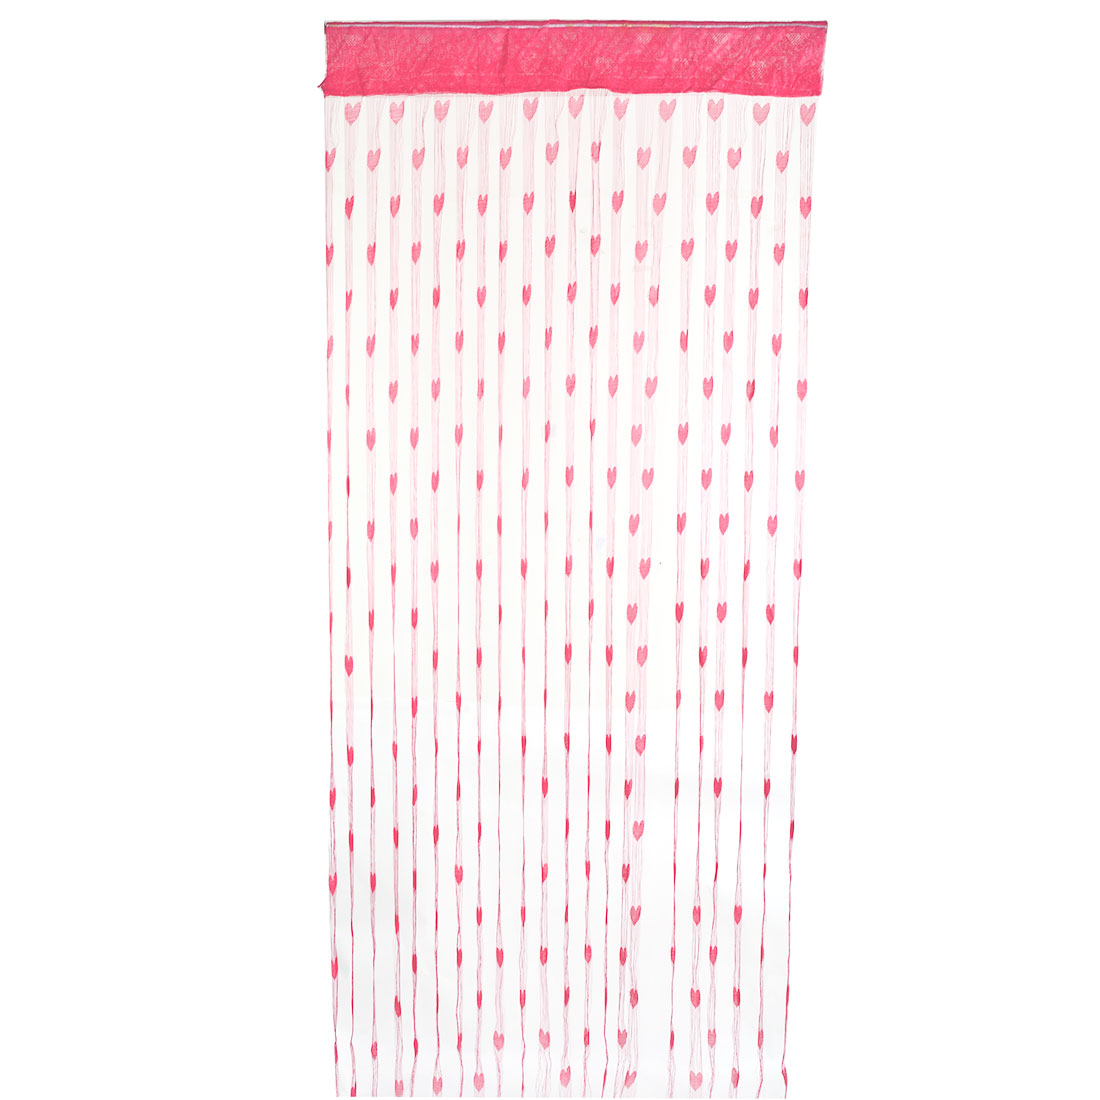 Household Polyester Heart Pattern Door Ornament Hanging String Curtain Fuchsia